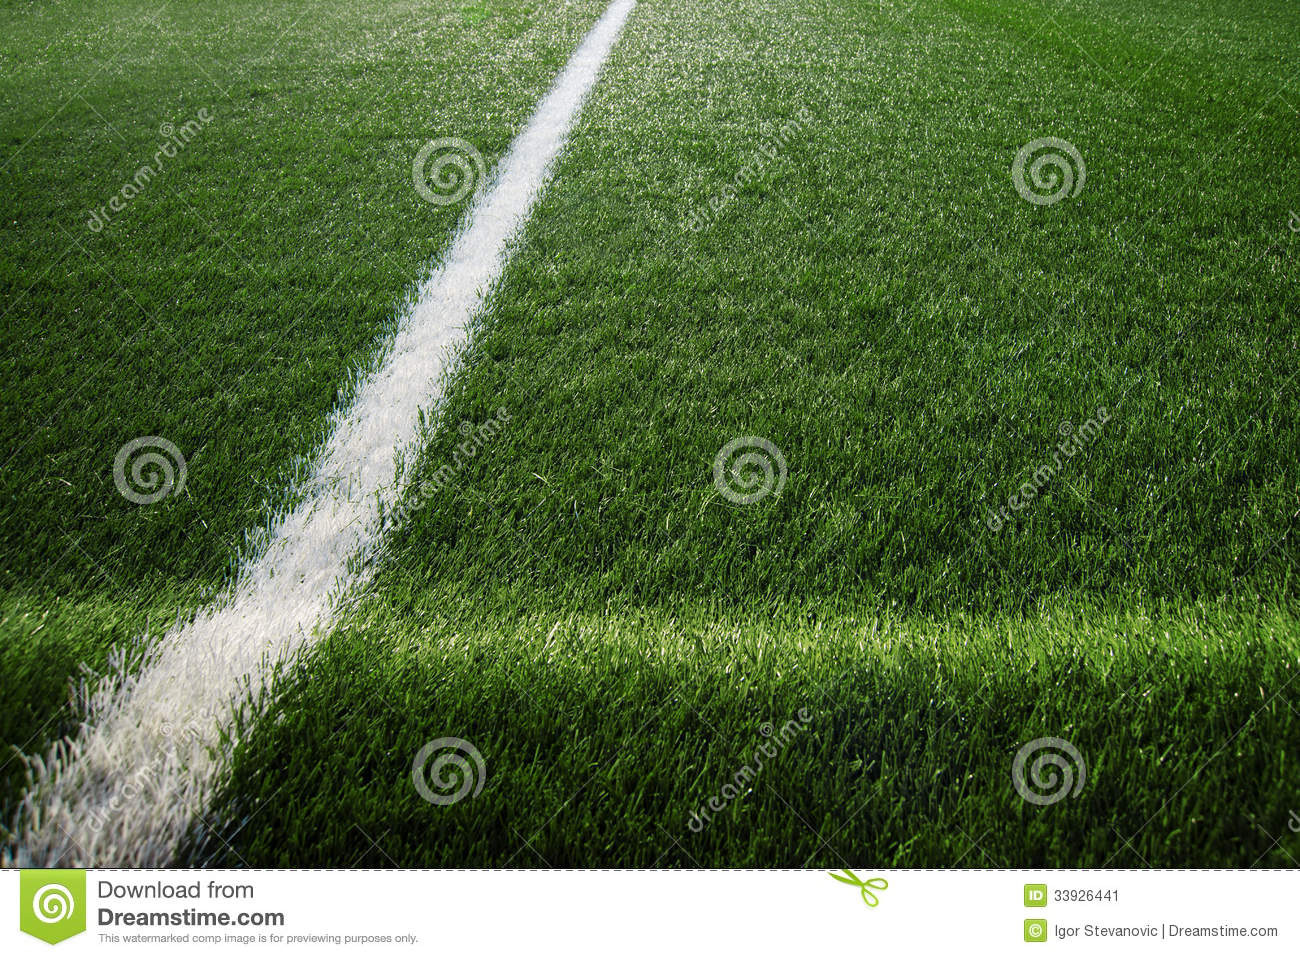 Recent Advances in Synthetic Turf and Infill Materials